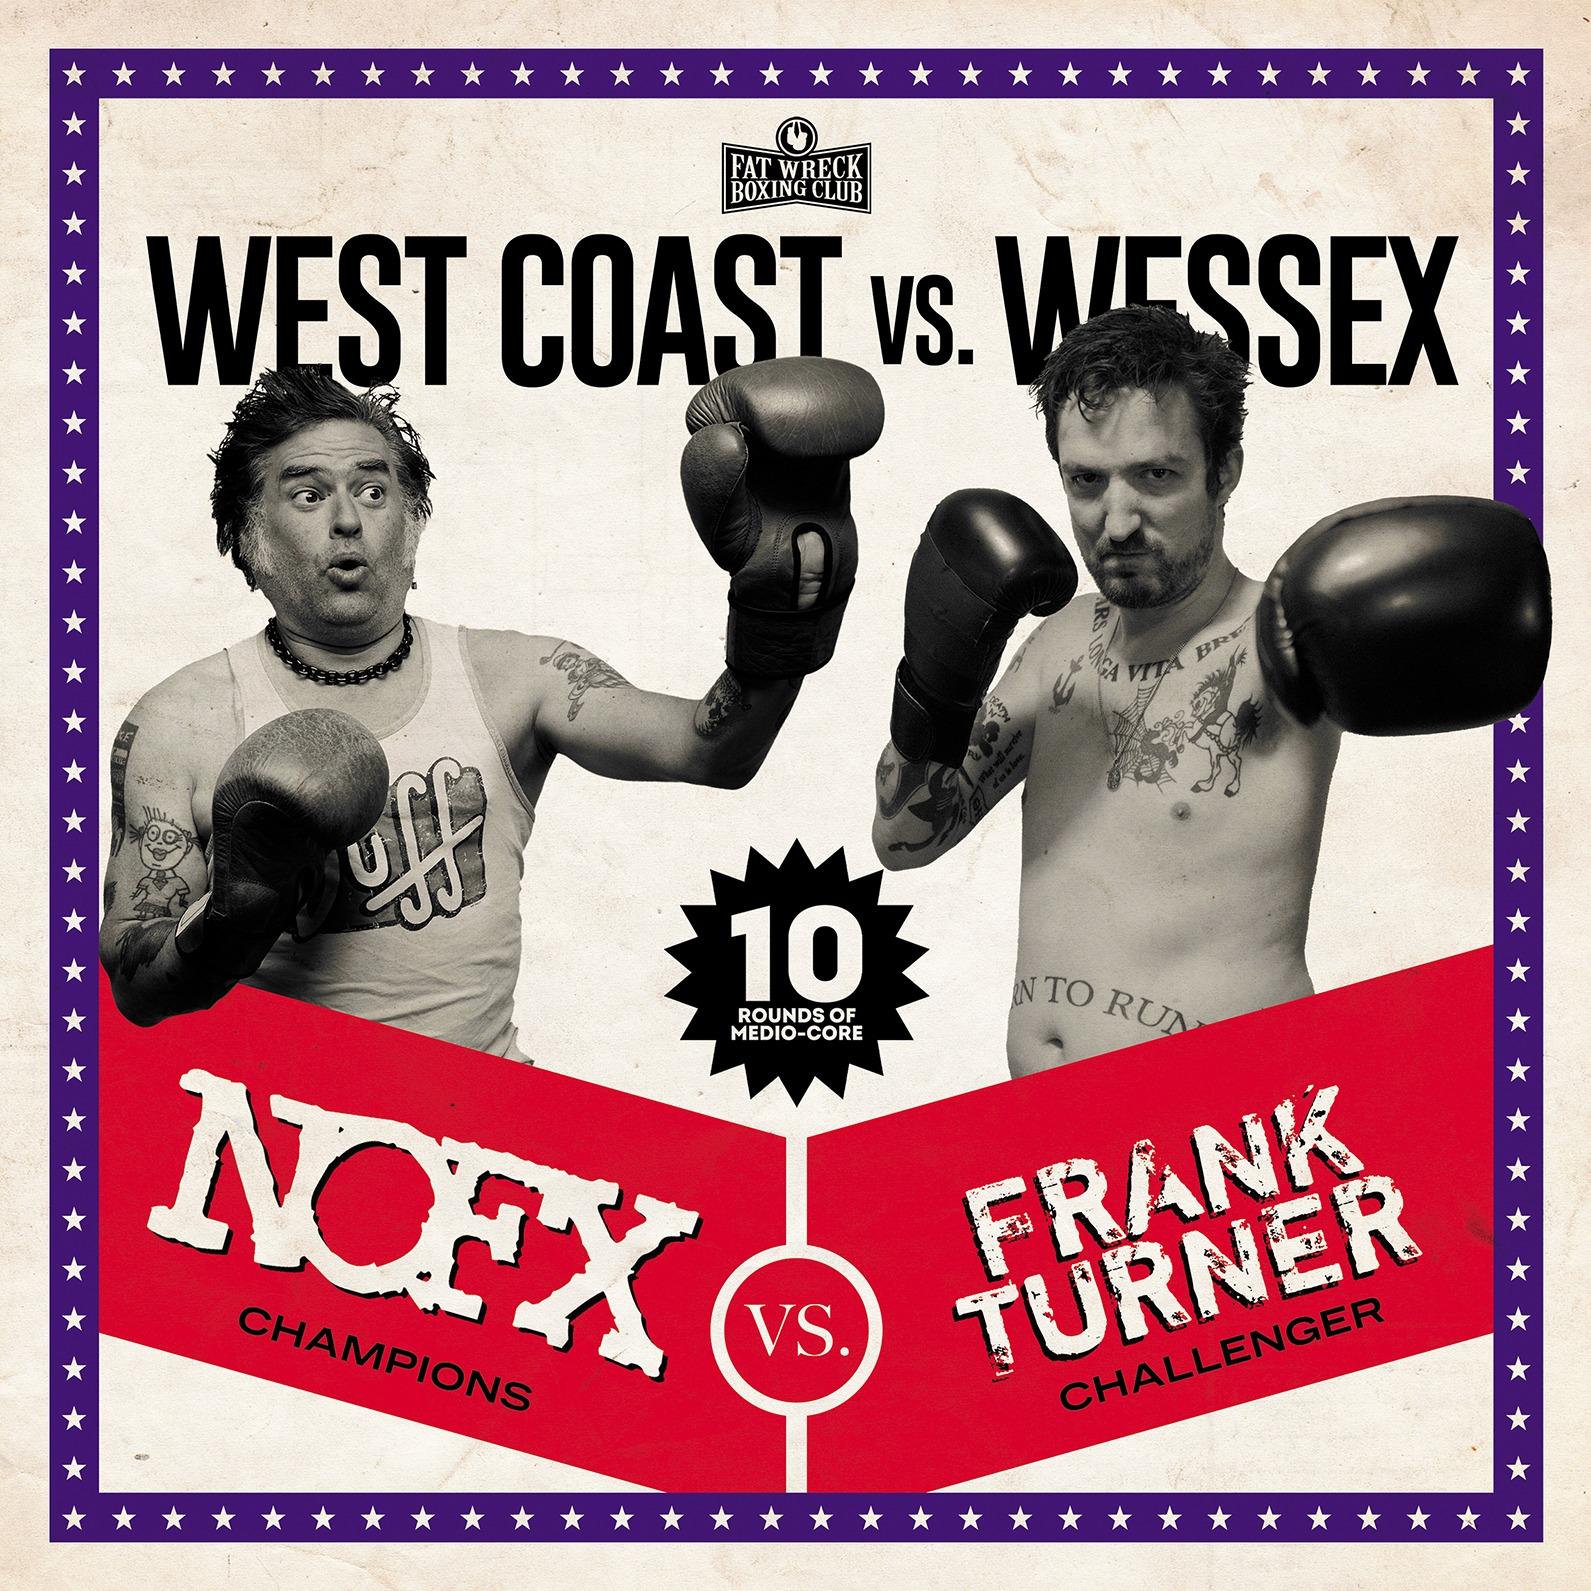 NOFX and Frank Turner